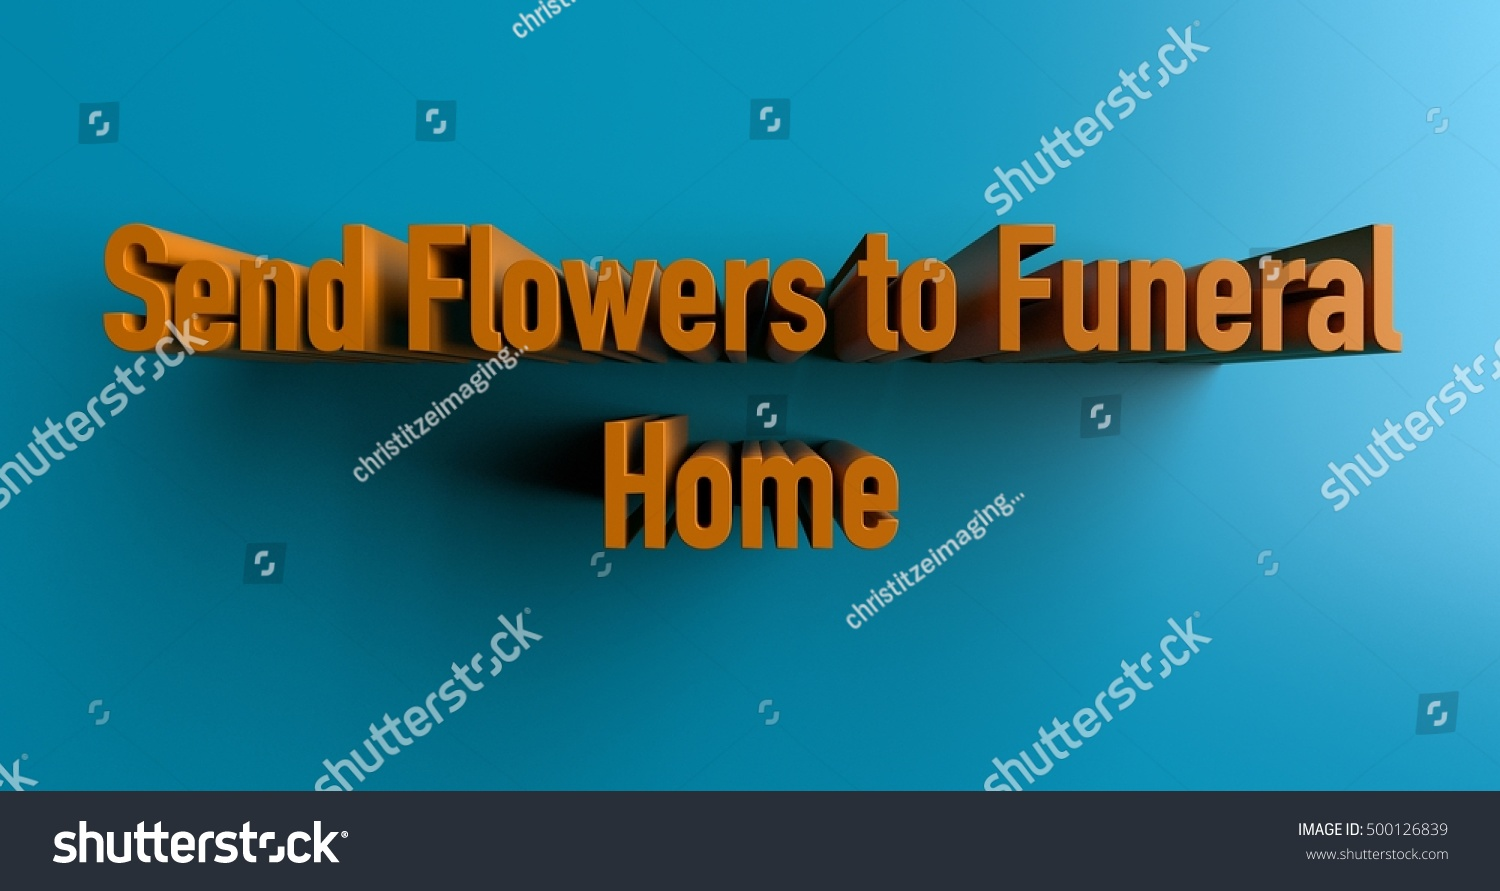 Send flowers to funeral home images flower wallpaper hd send flowers funeral home 3d rendered stock illustration 500126839 send flowers to funeral home 3d rendered izmirmasajfo Images